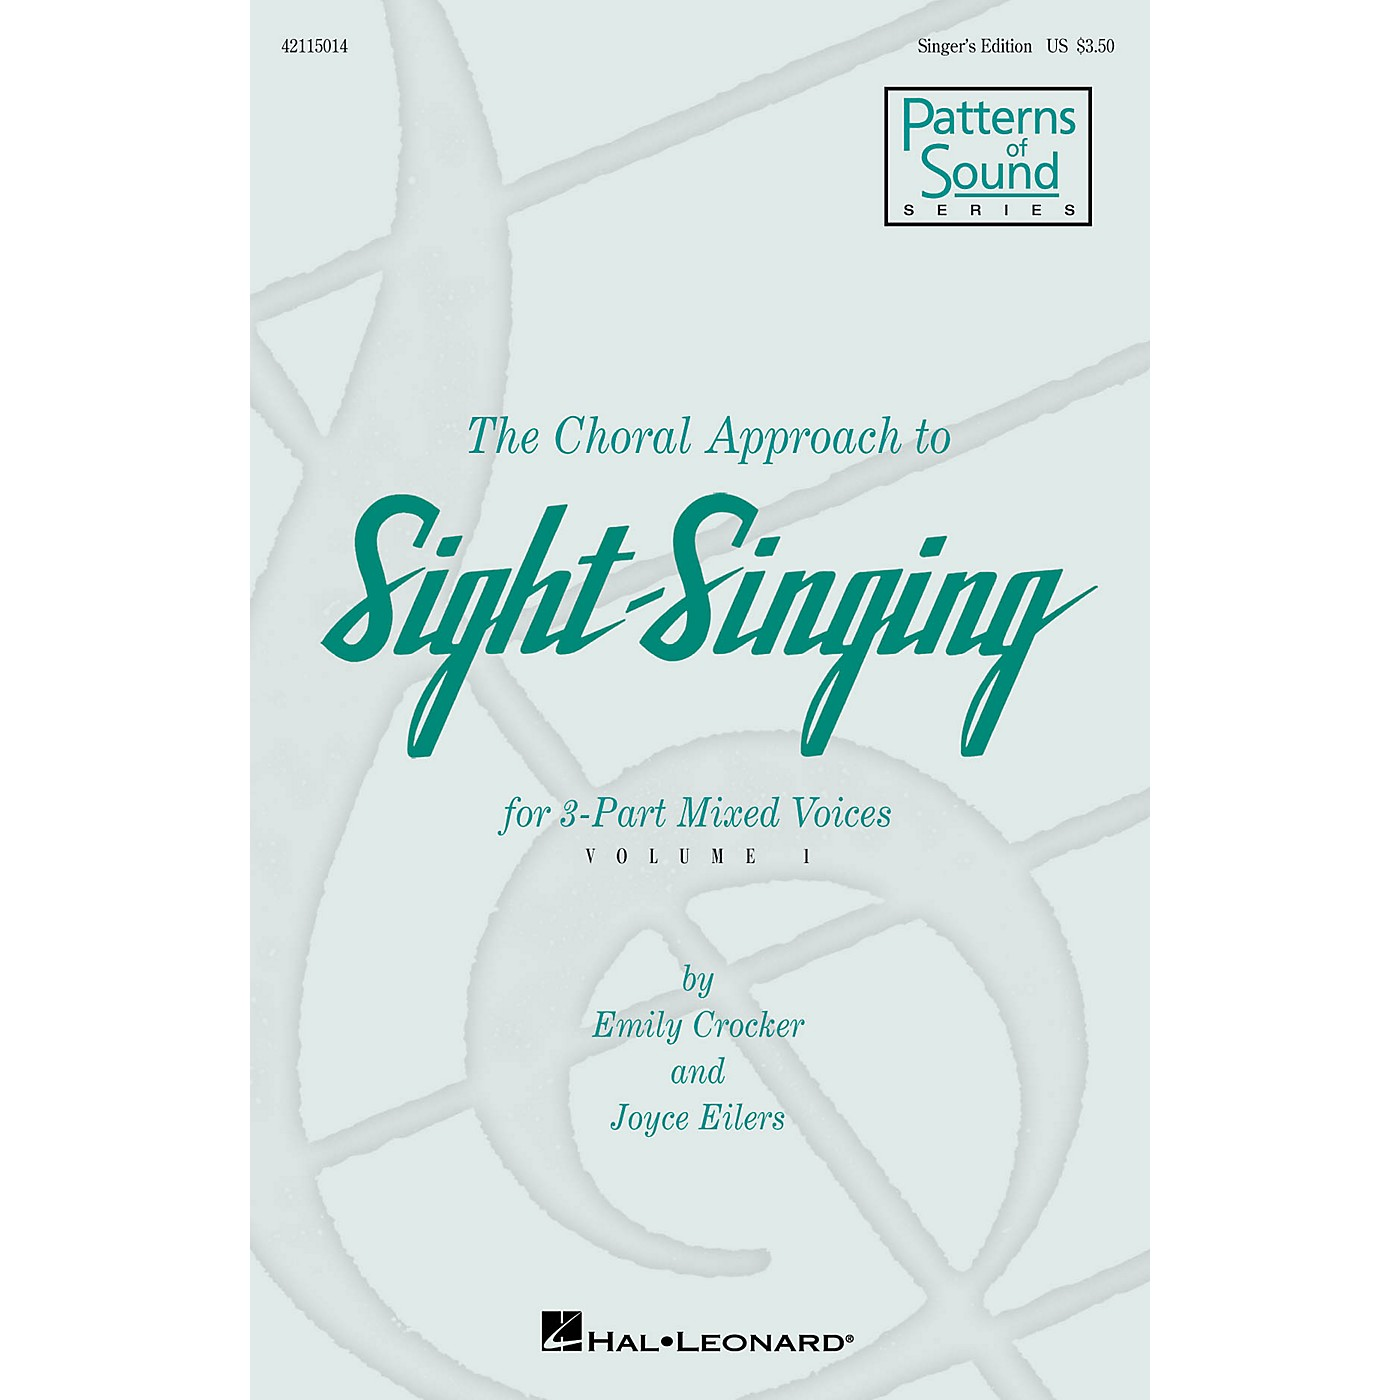 Hal Leonard The Choral Approach to Sight-Singing (Vol. I) Singer's Ed composed by Emily Crocker thumbnail